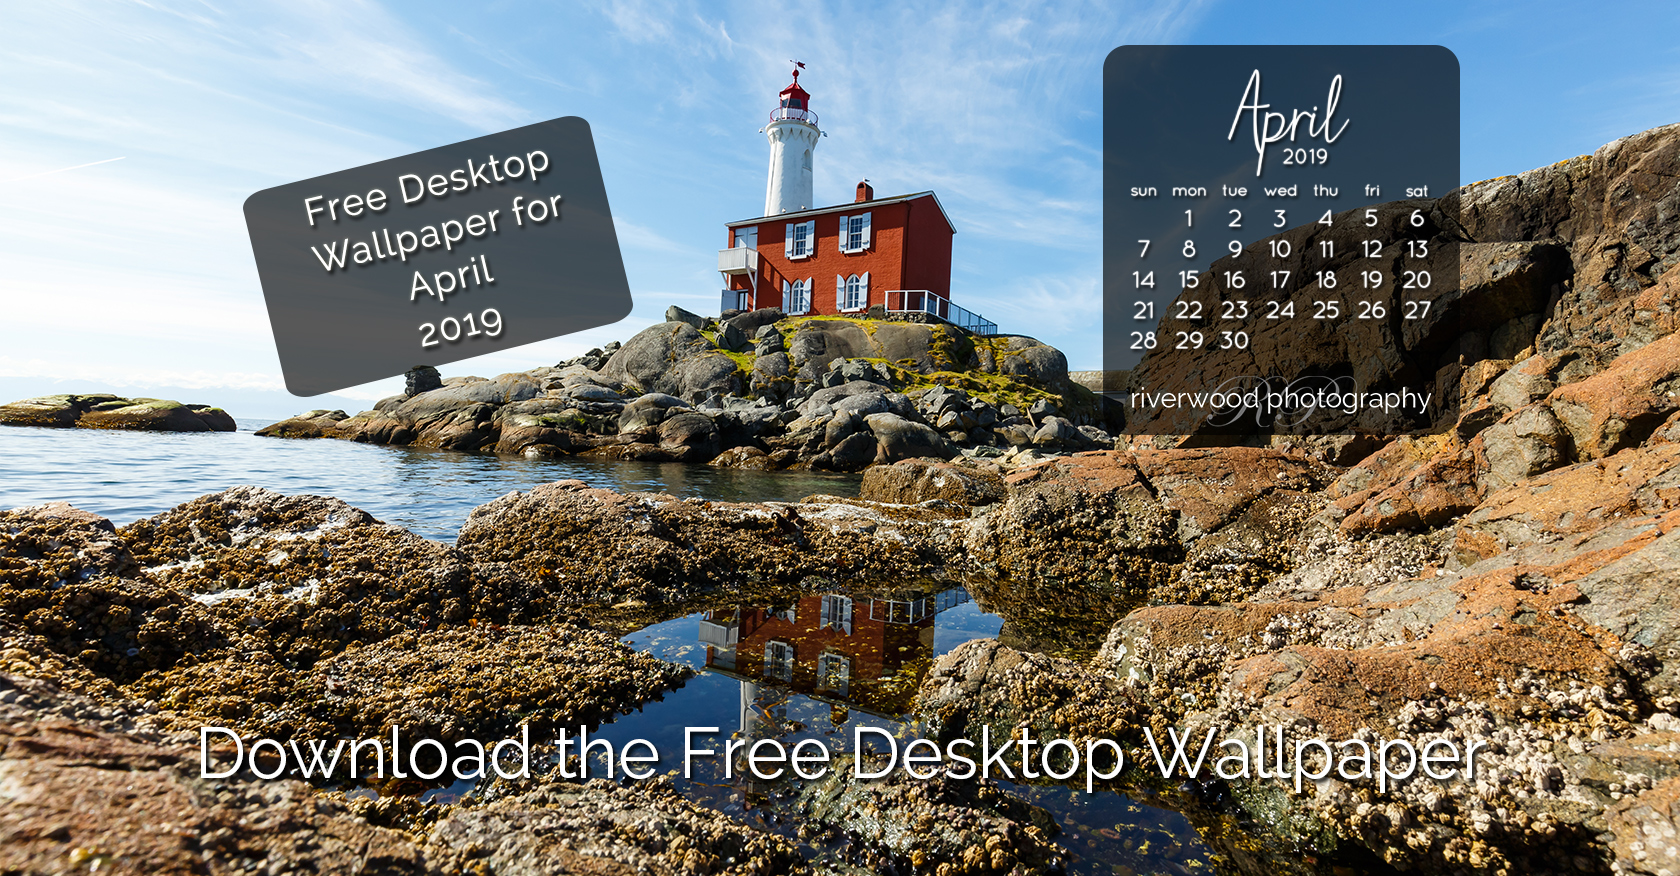 Free Desktop Wallpaper for April 2019 – Fisgard Lighthouse